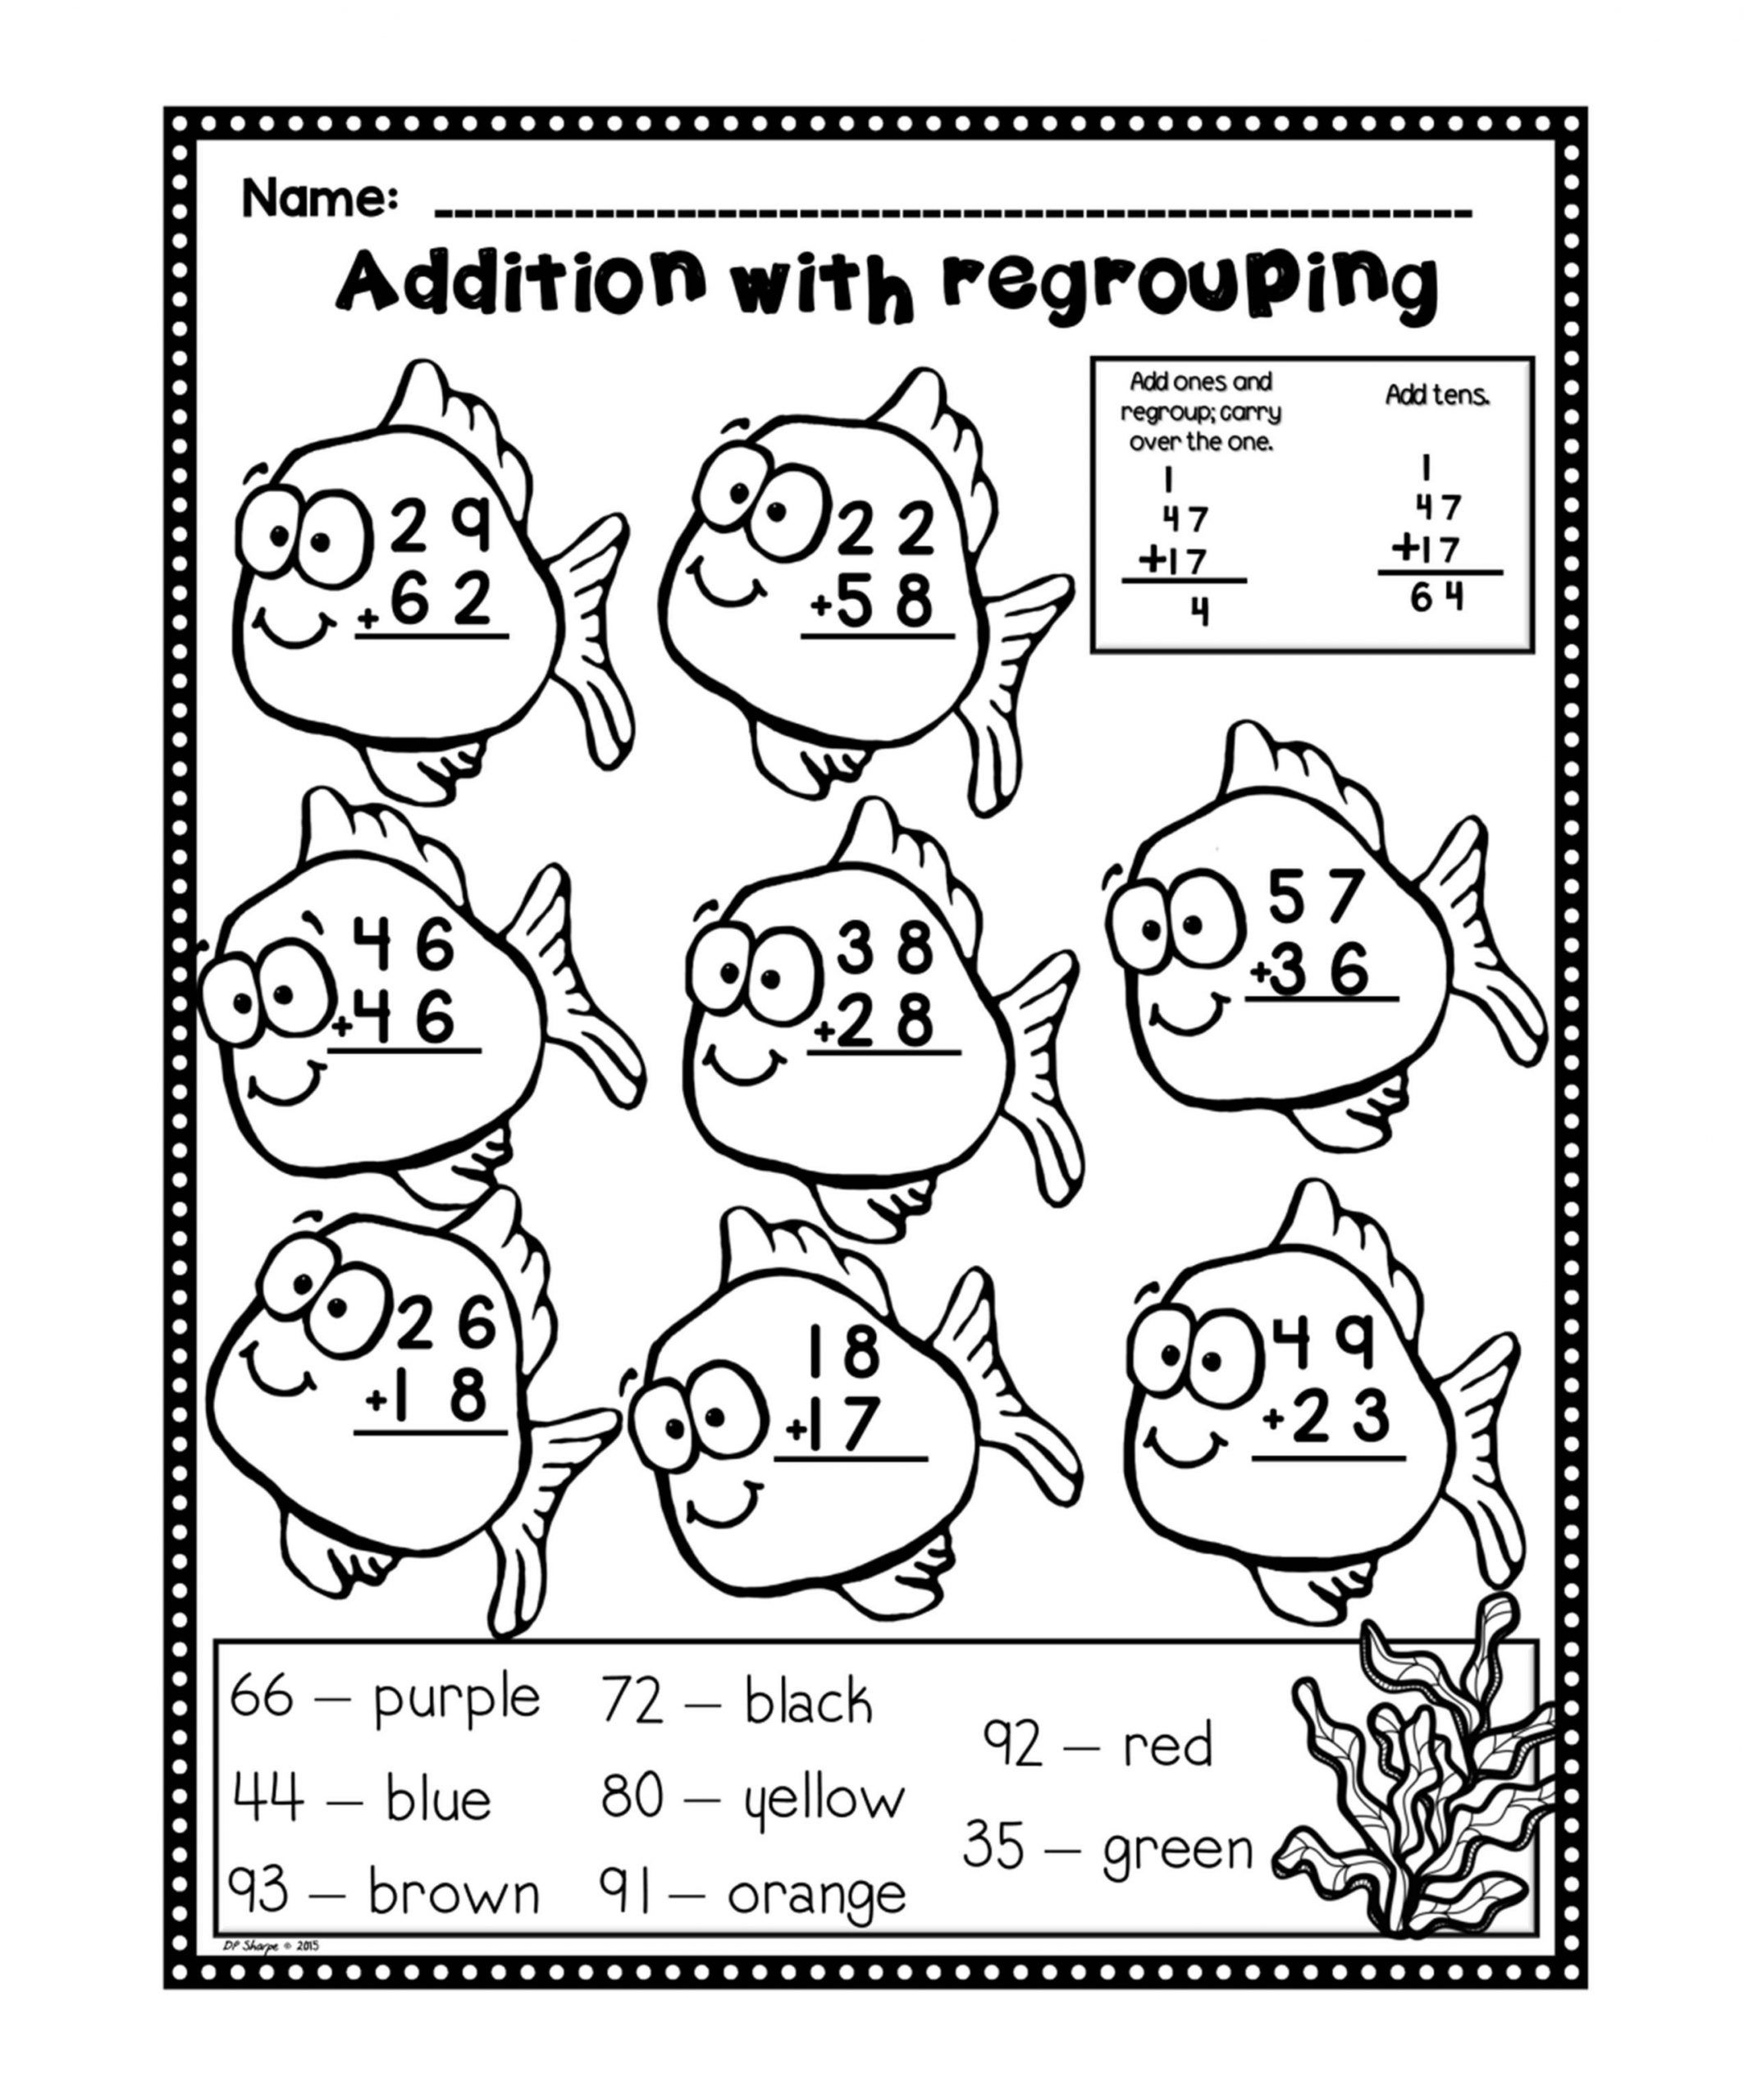 Addition With Regrouping Coloring Worksheets Addition With Regrouping Worksheets Color Worksheets Addition And Subtraction Worksheets [ 2560 x 2126 Pixel ]